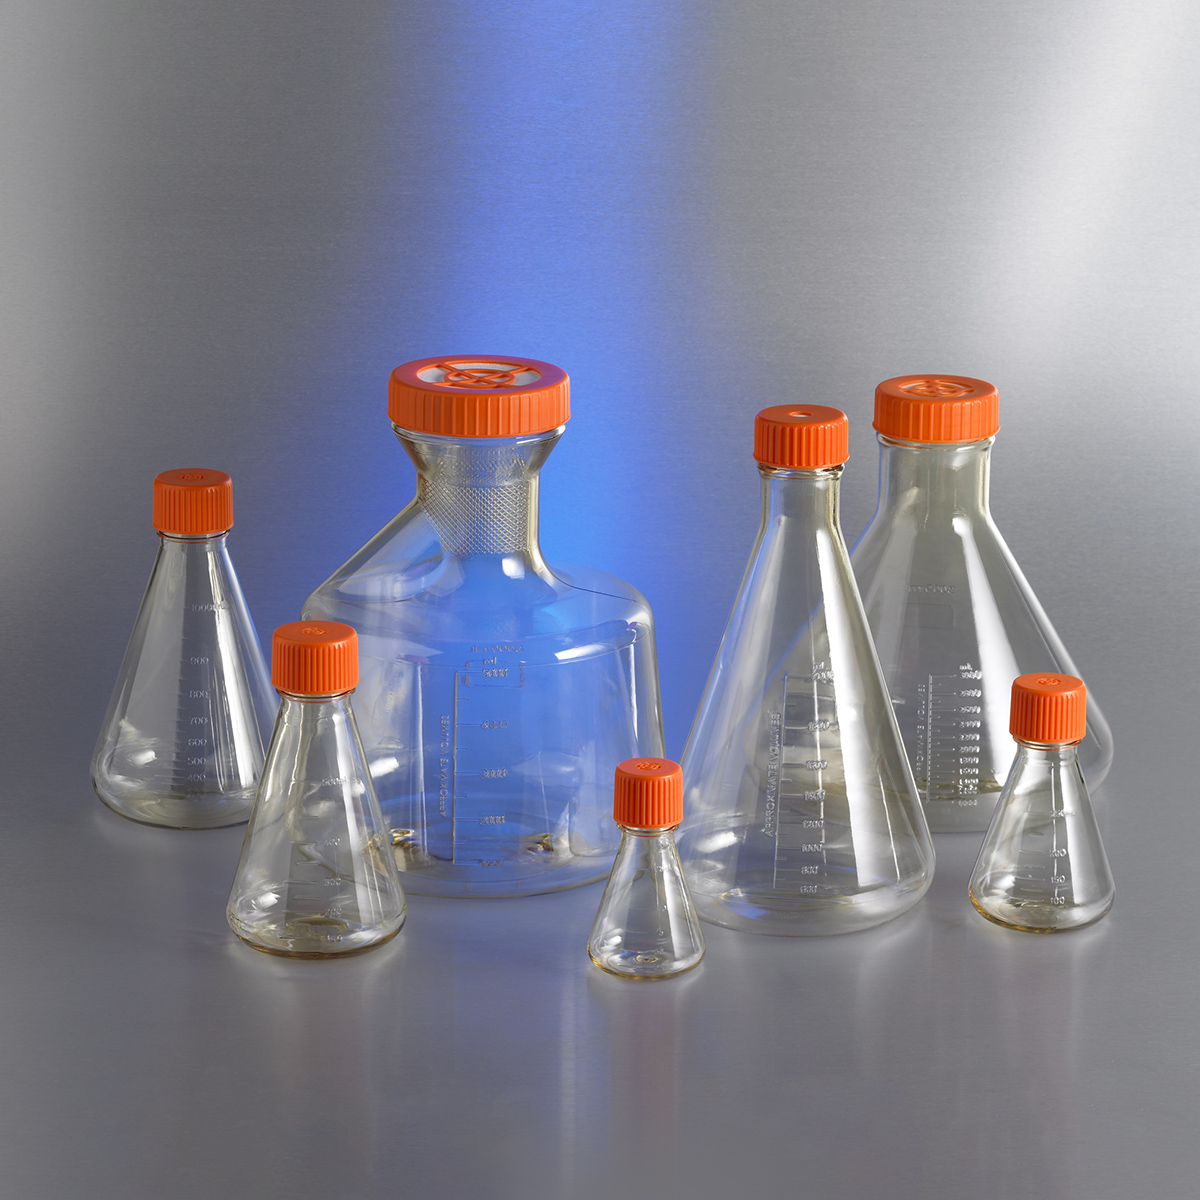 Corning® 1L Polycarbonate Erlenmeyer Flask with Vent Cap by Corning Life Sciences thumbnail